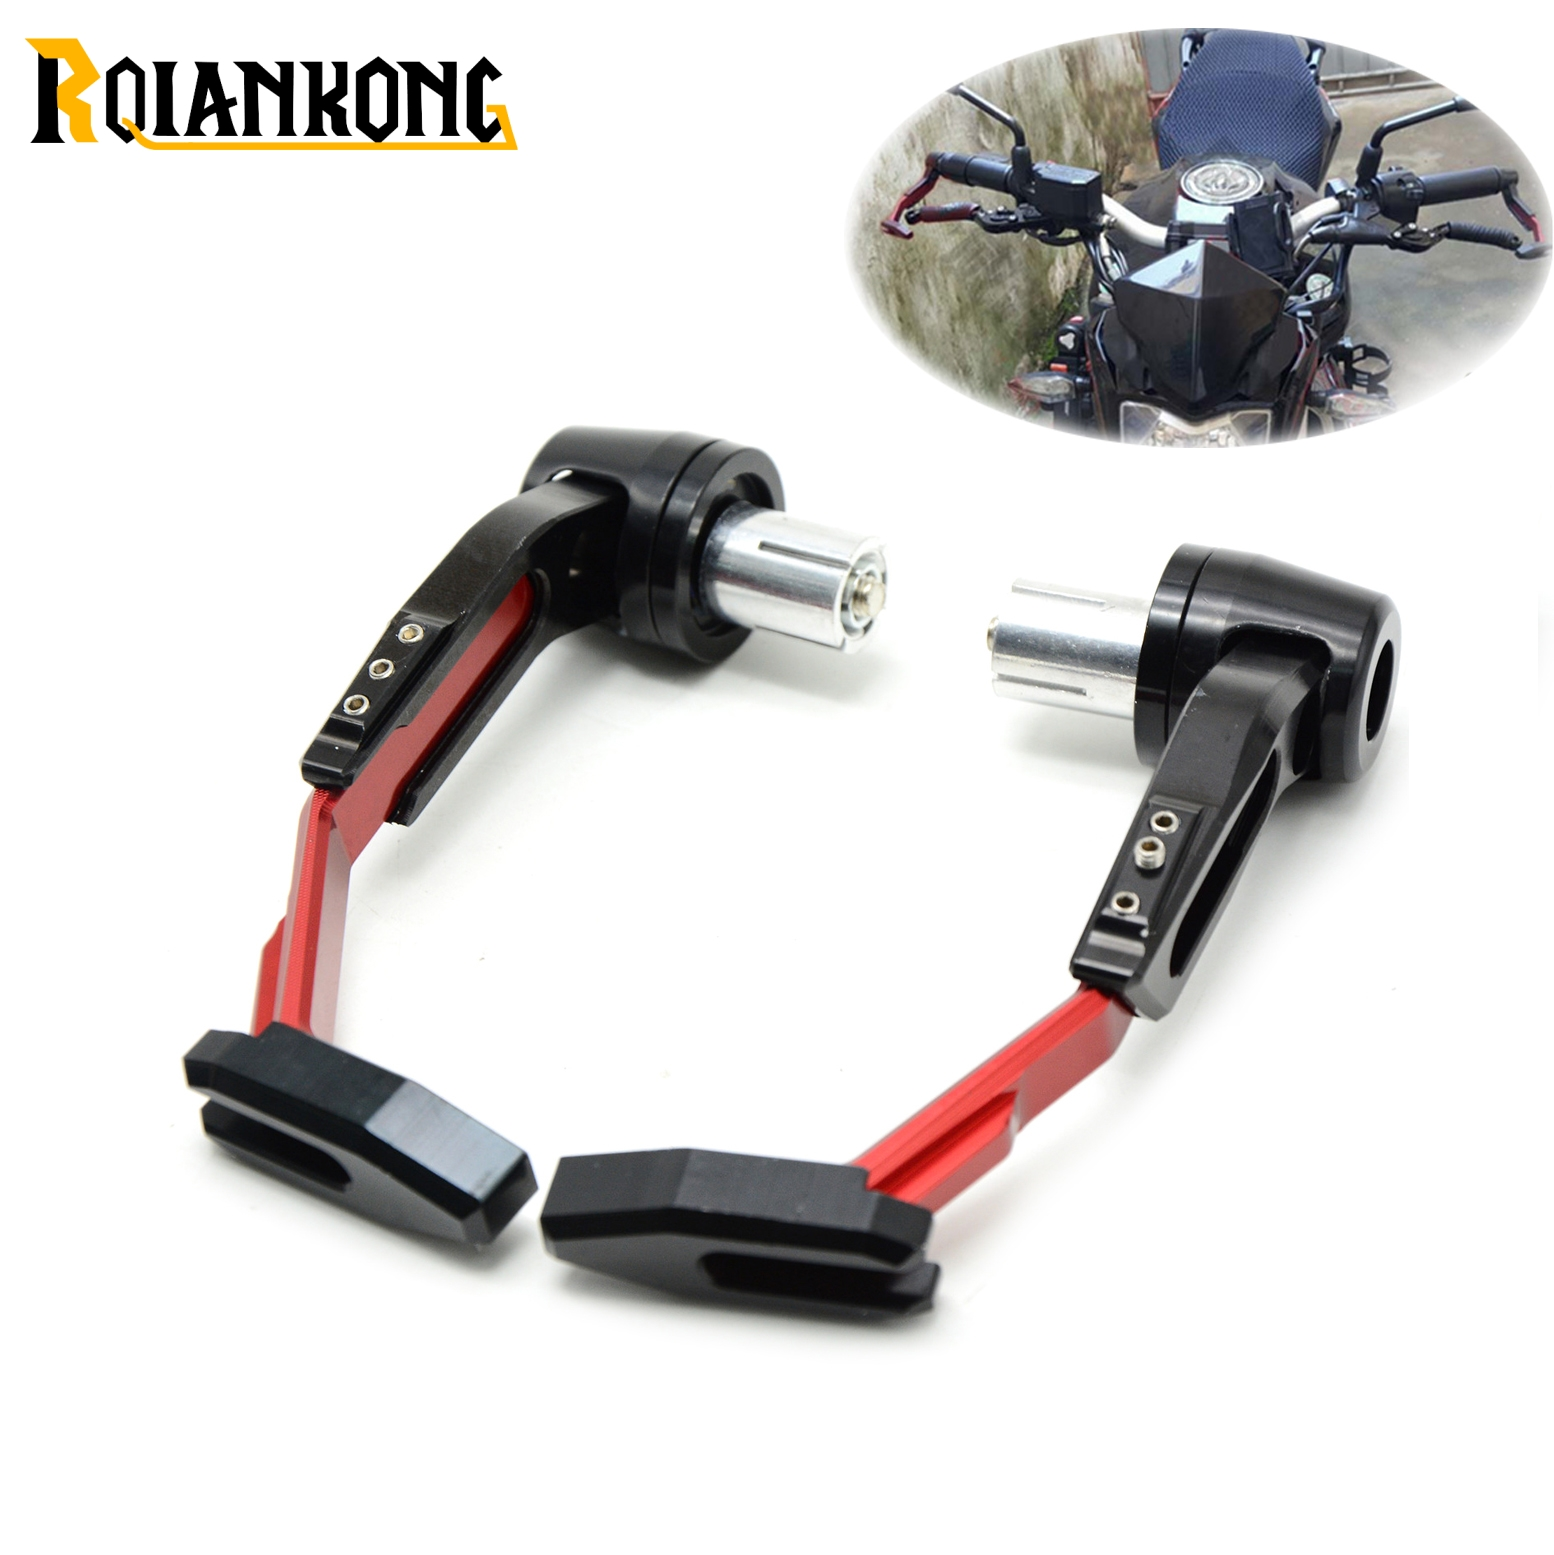 Universal 7/822mm Motorcycle Handlebar Clutch Brake Lever Protect Guard for TRIUMPH BONNEVILLE SE T100 T120 for 22mm 7 8 handlebar motorcycle dirt bike universal stunt clutch lever assembly cnc aluminum